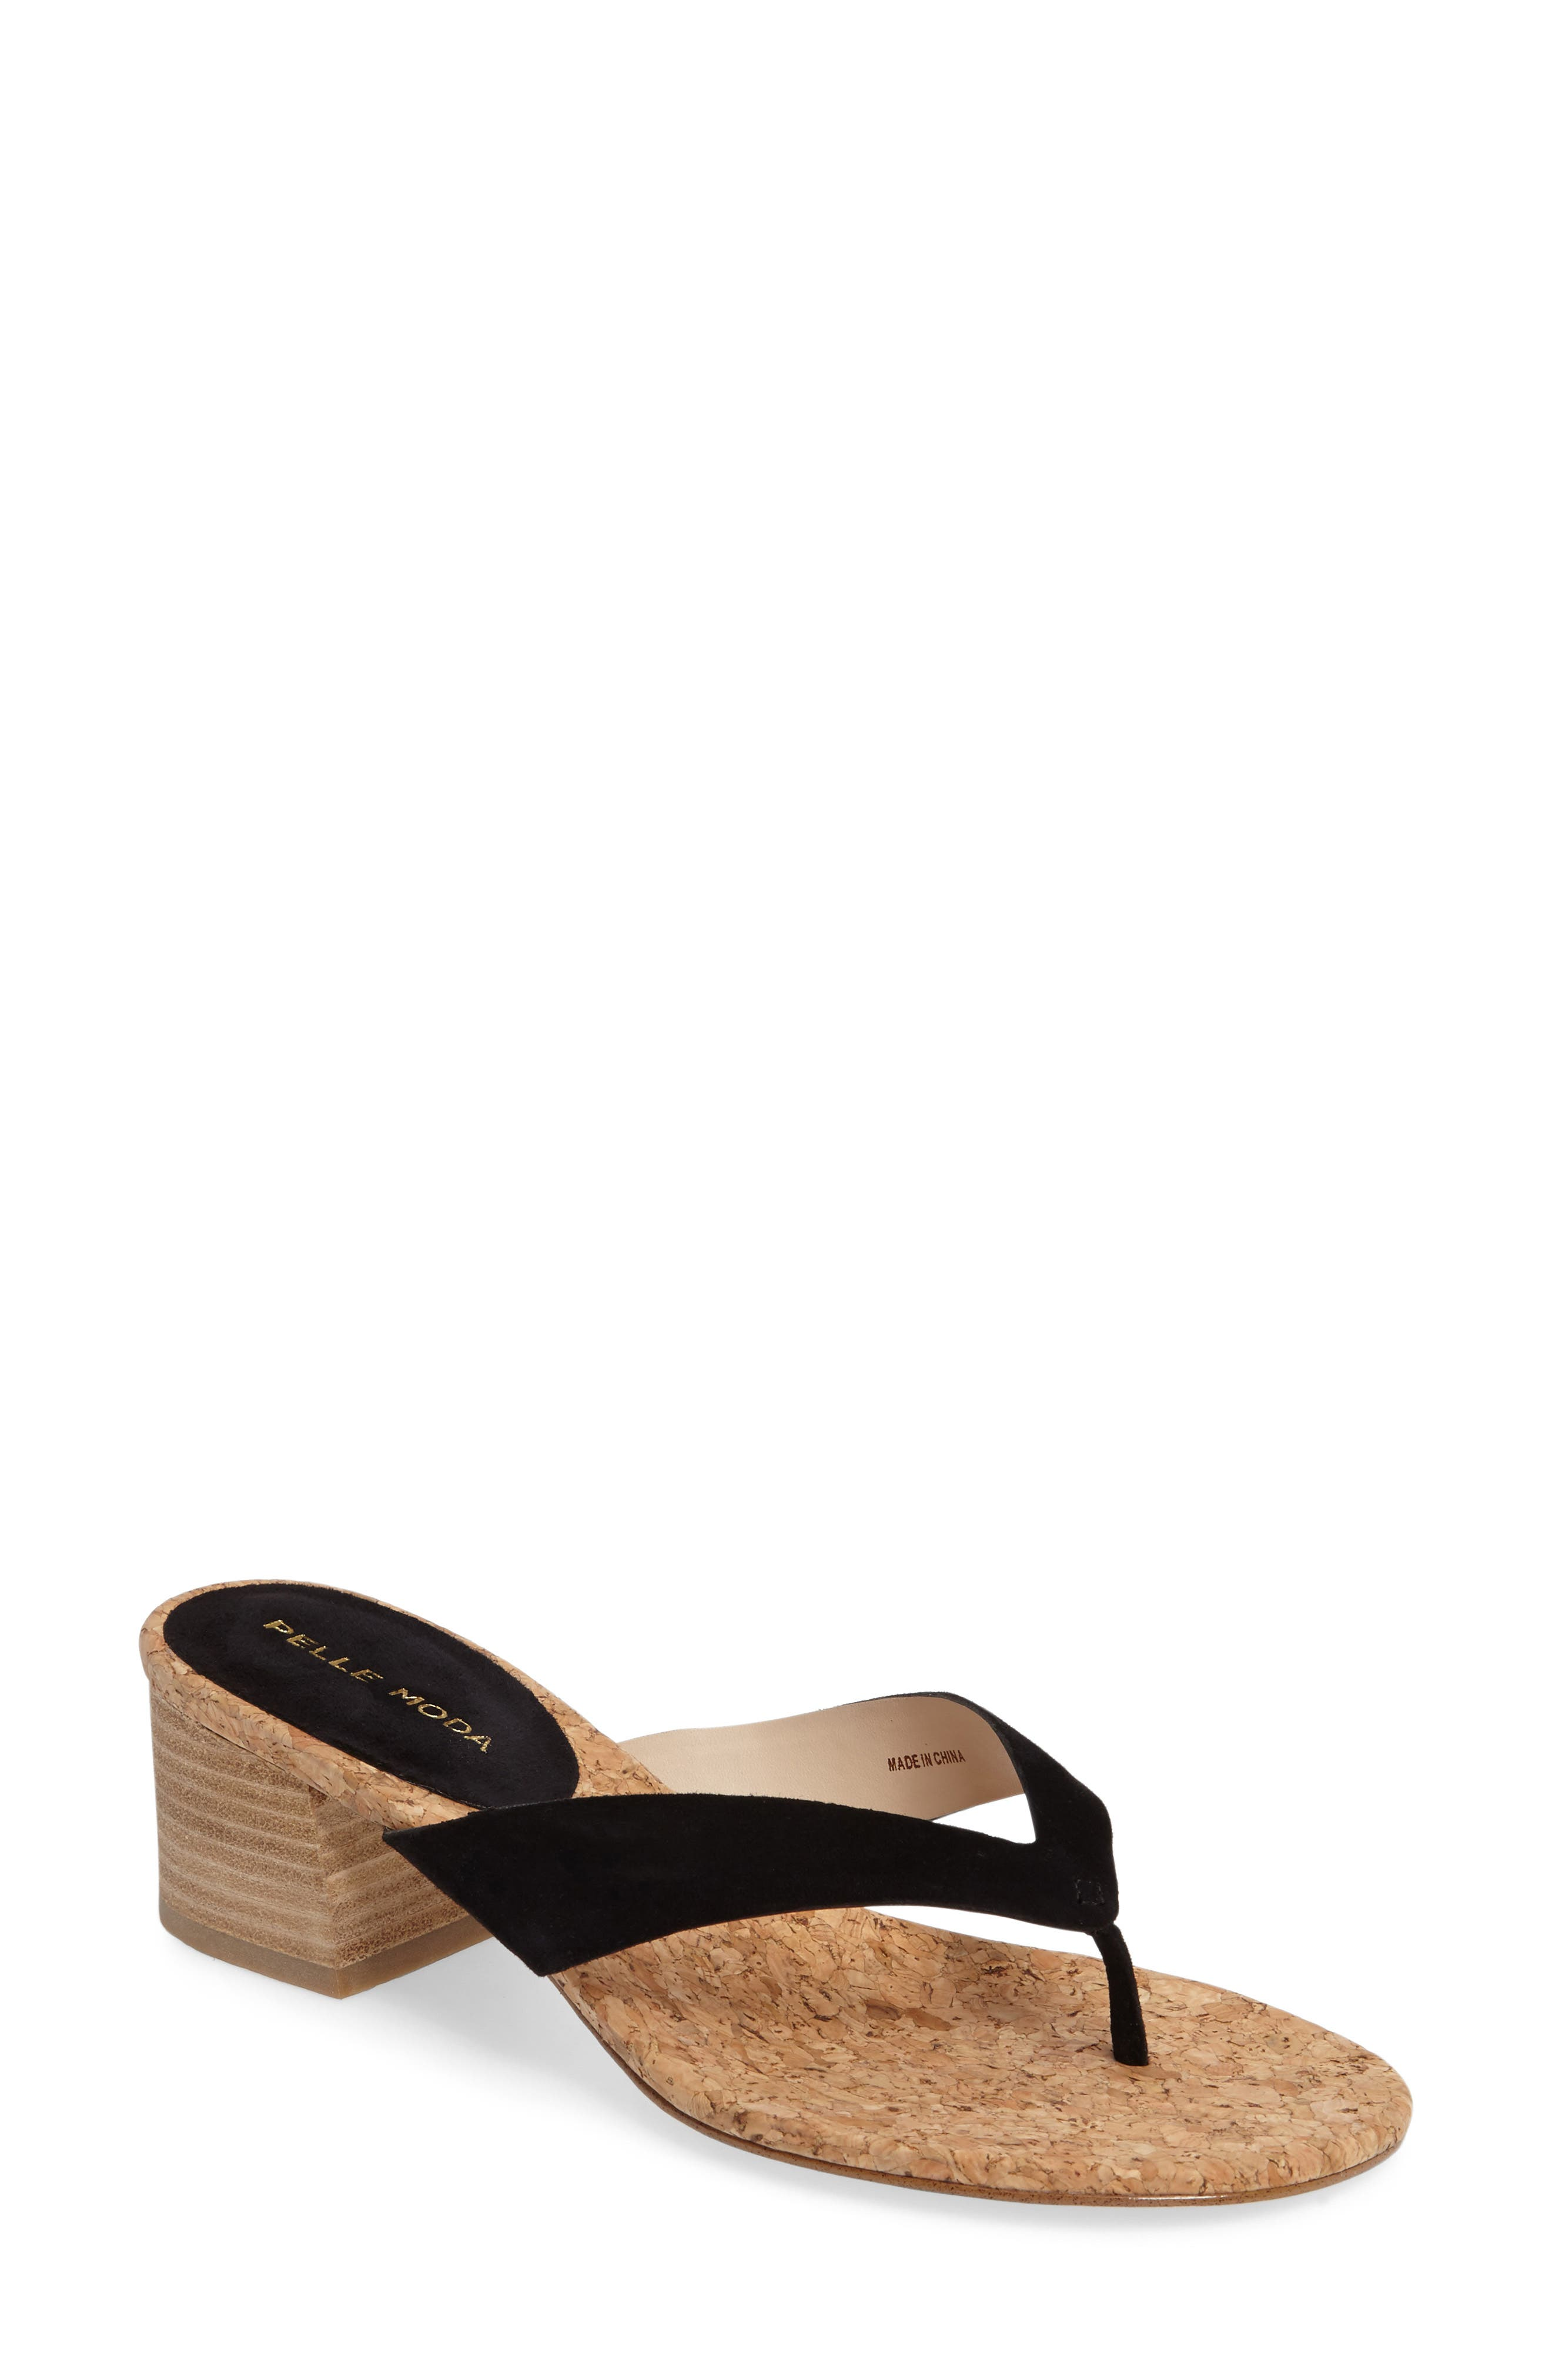 Meryl Sandal,                         Main,                         color, Black Leather